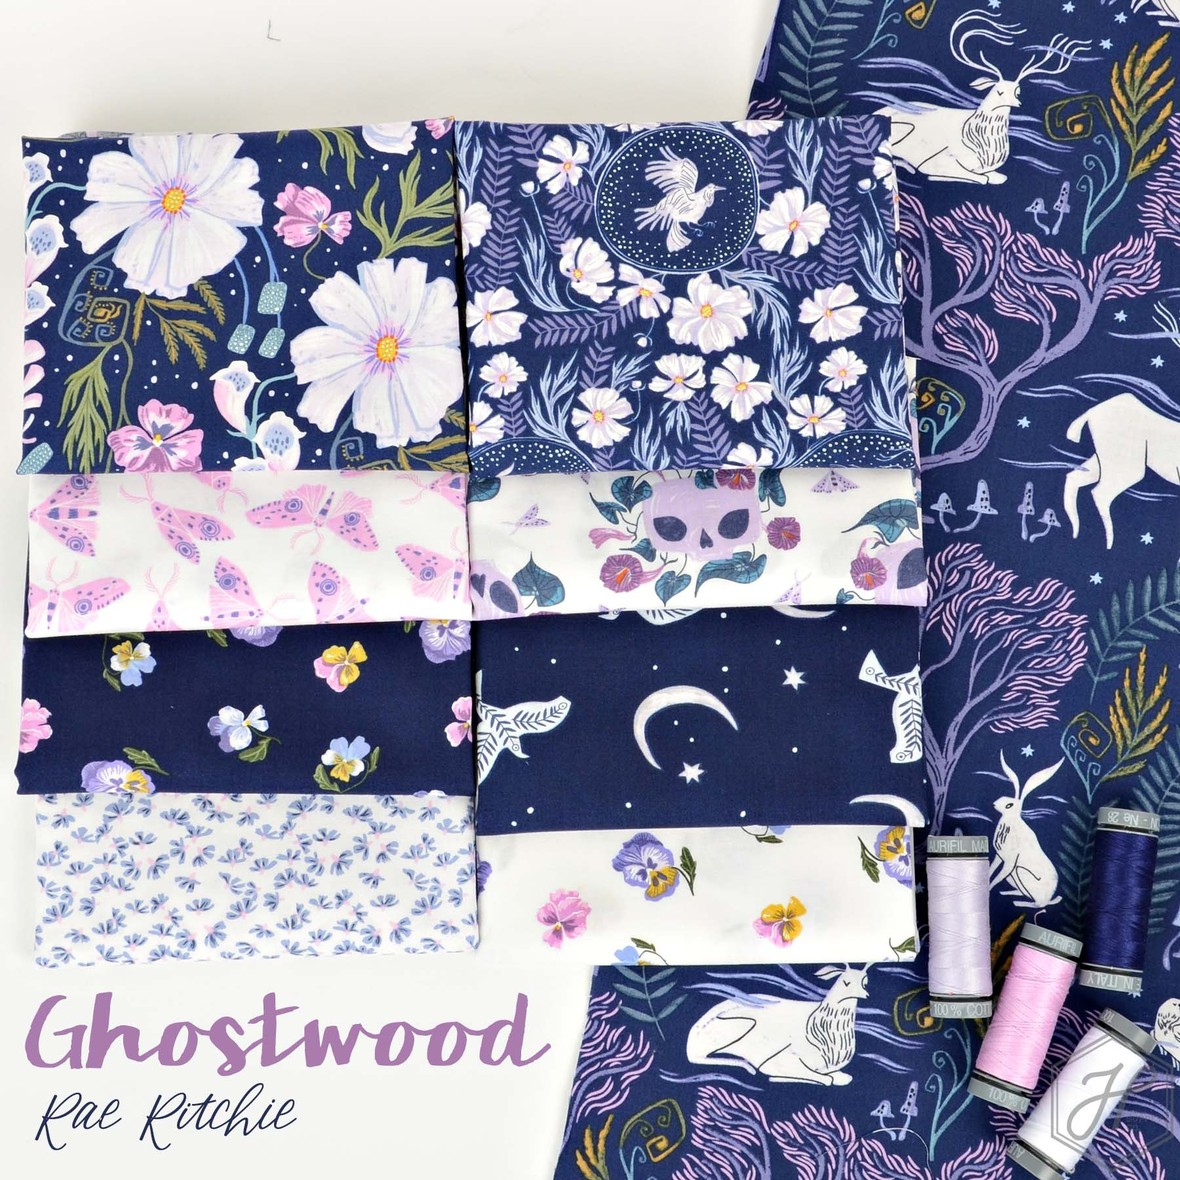 Ghostwood Fabric Poster Rae Ritchie at Hawthorne Supply Co